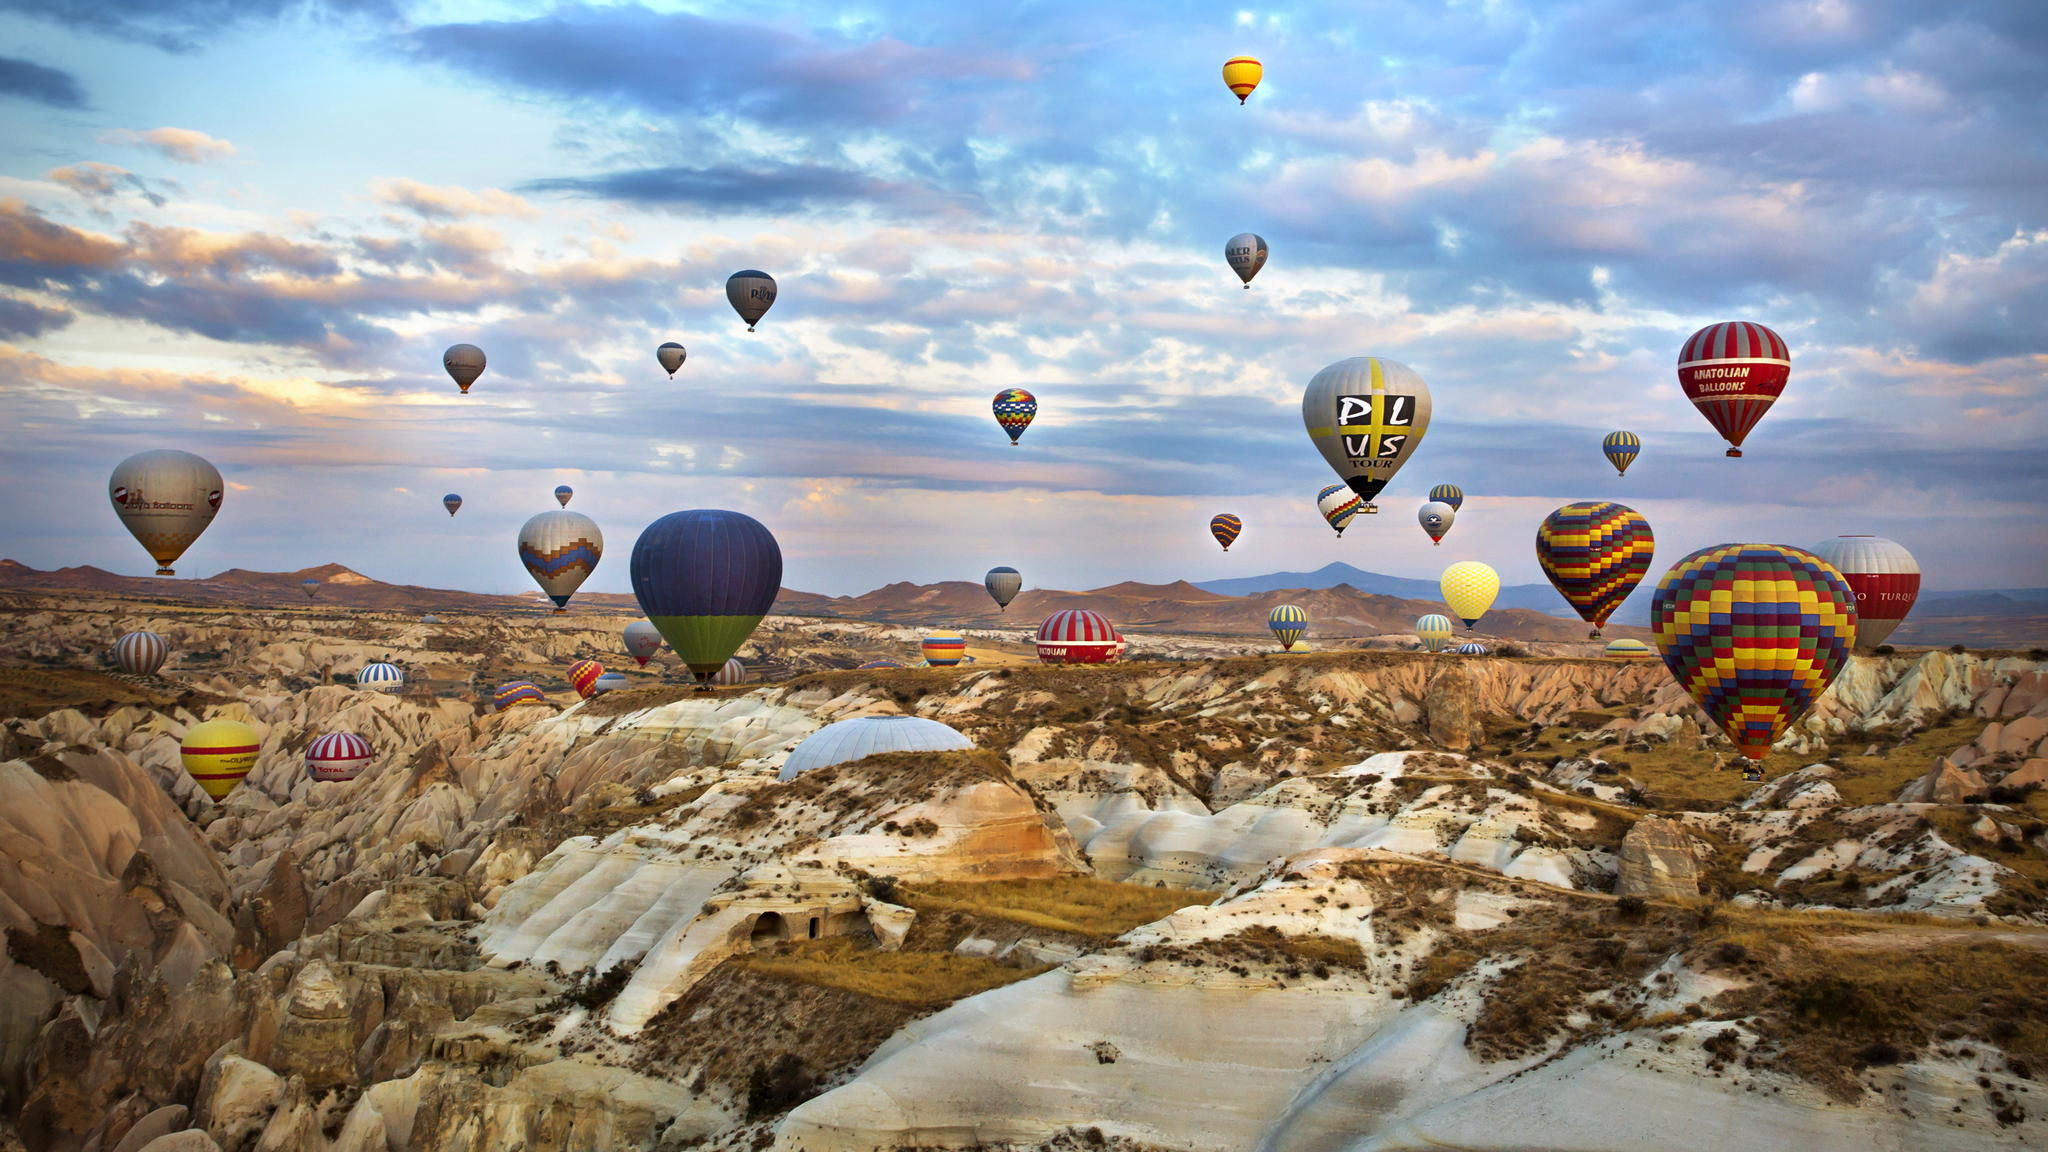 Royal Balloon Cappadocia and Central Turkey, Hot air ballooning in Cappadocia - Property Turkey